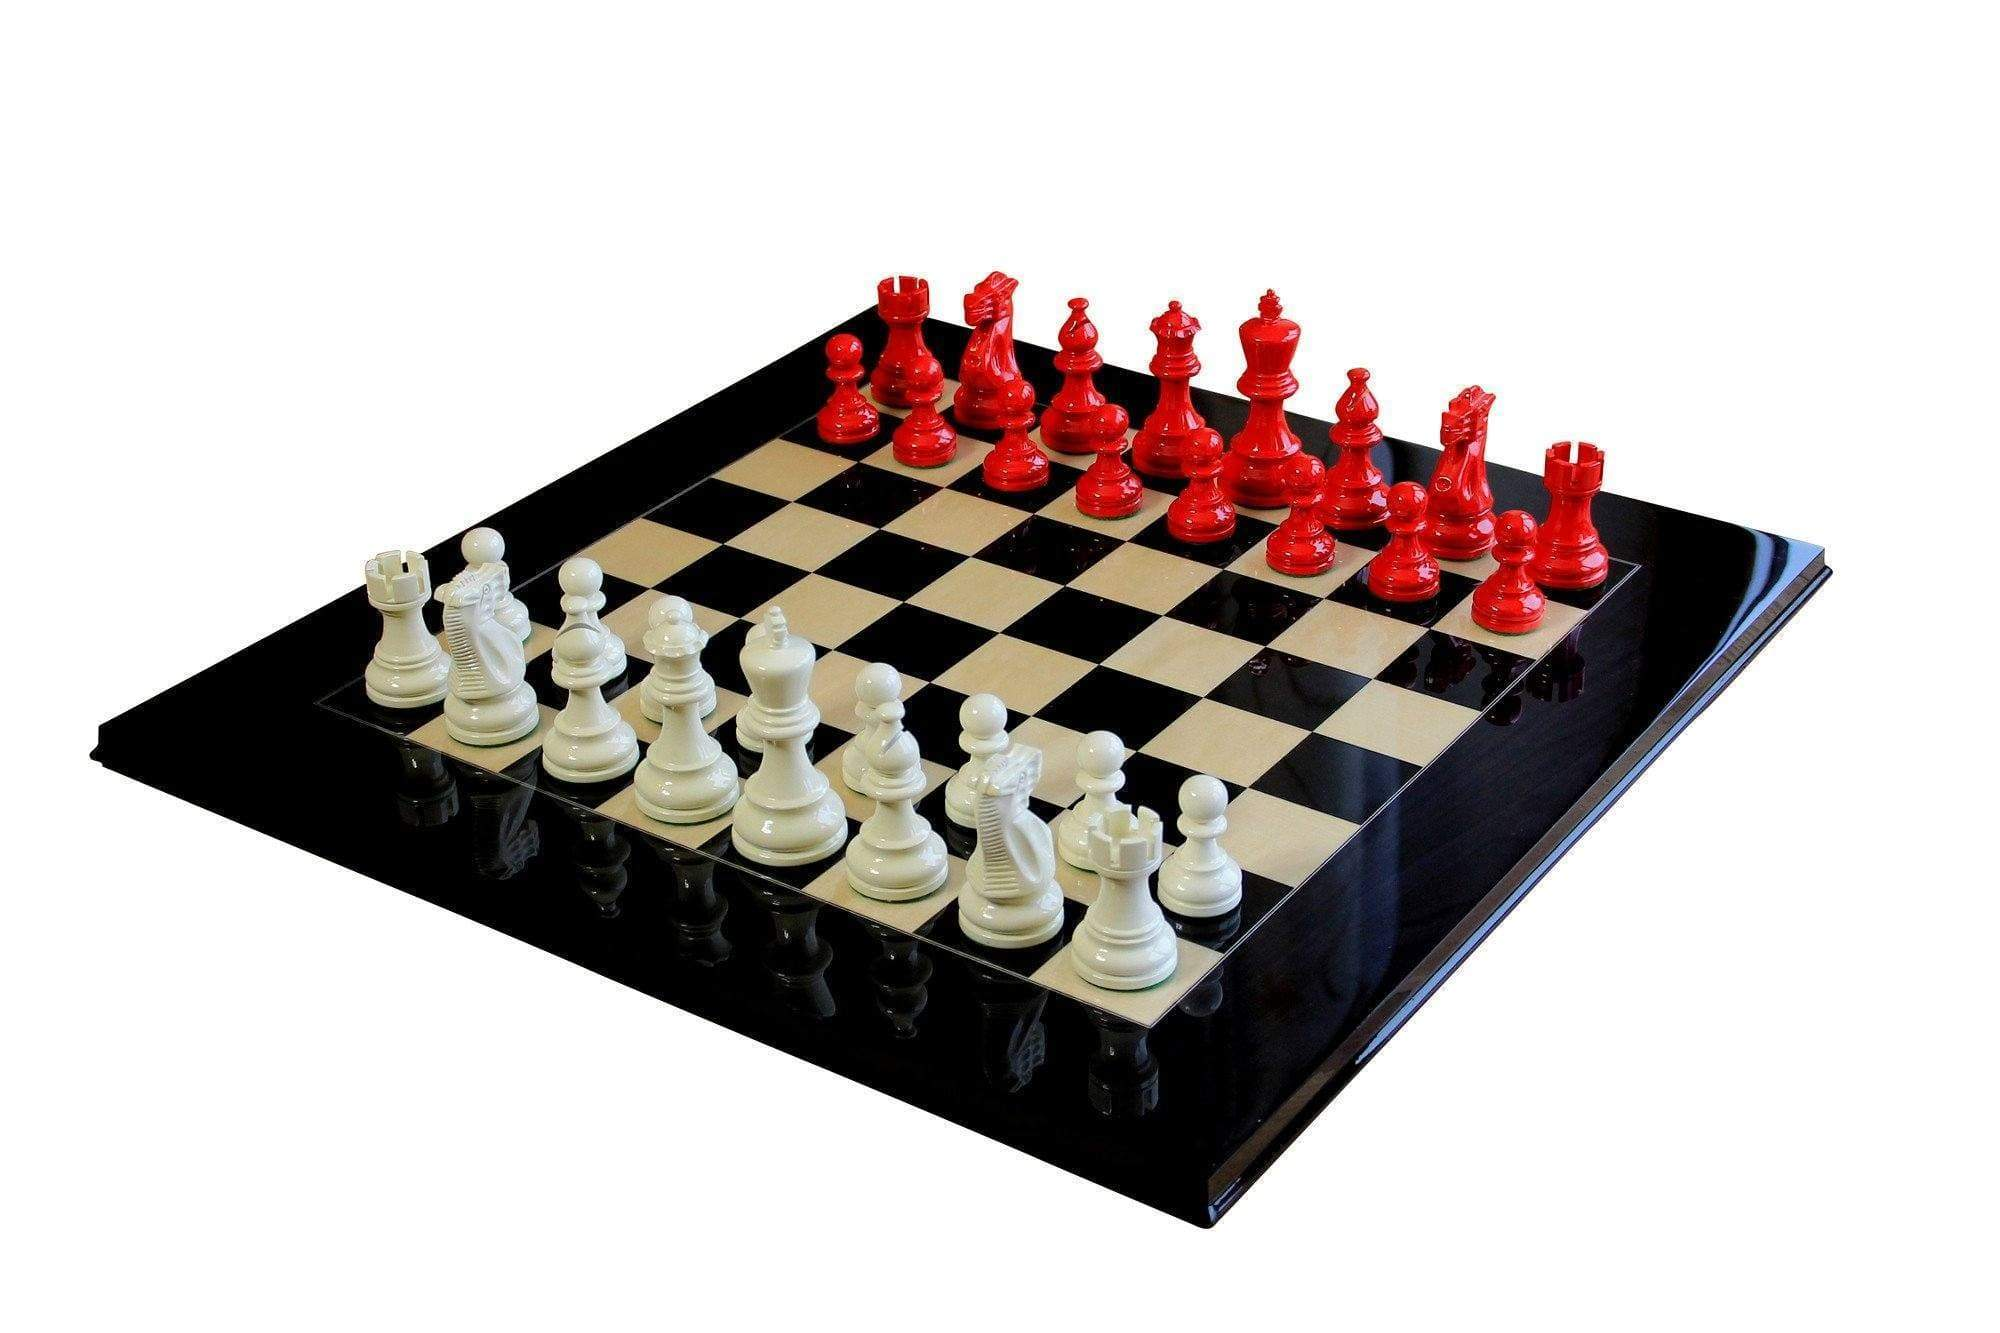 Chess Set - Atlantic Red Gloss & Cream Anegre Chess Set